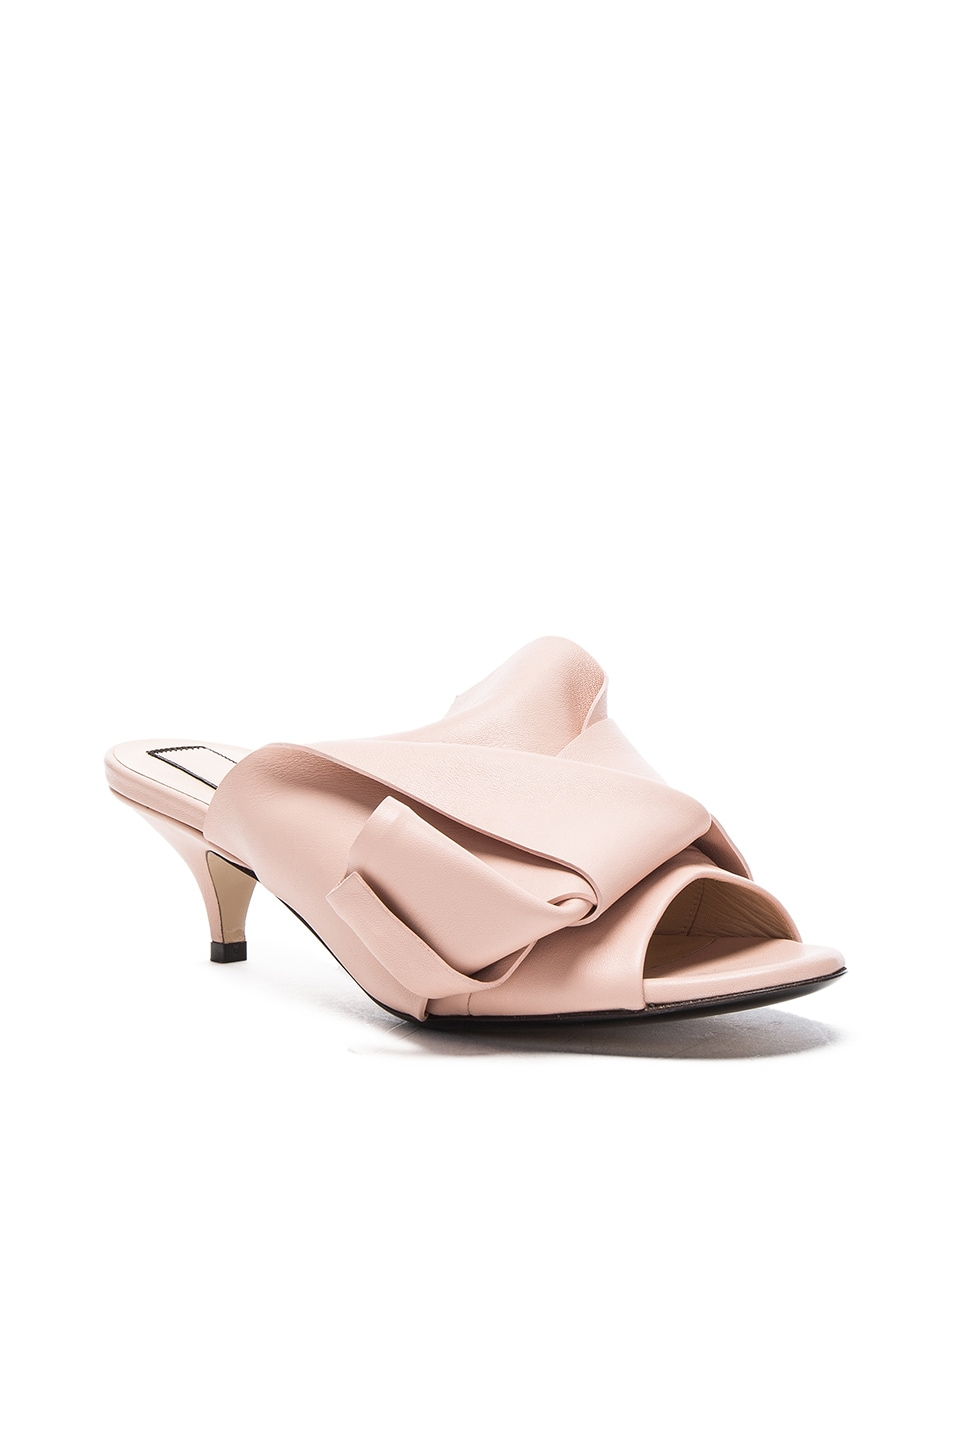 Image 2 of No. 21 Bow Kitten Heel Mule in Nude Leather